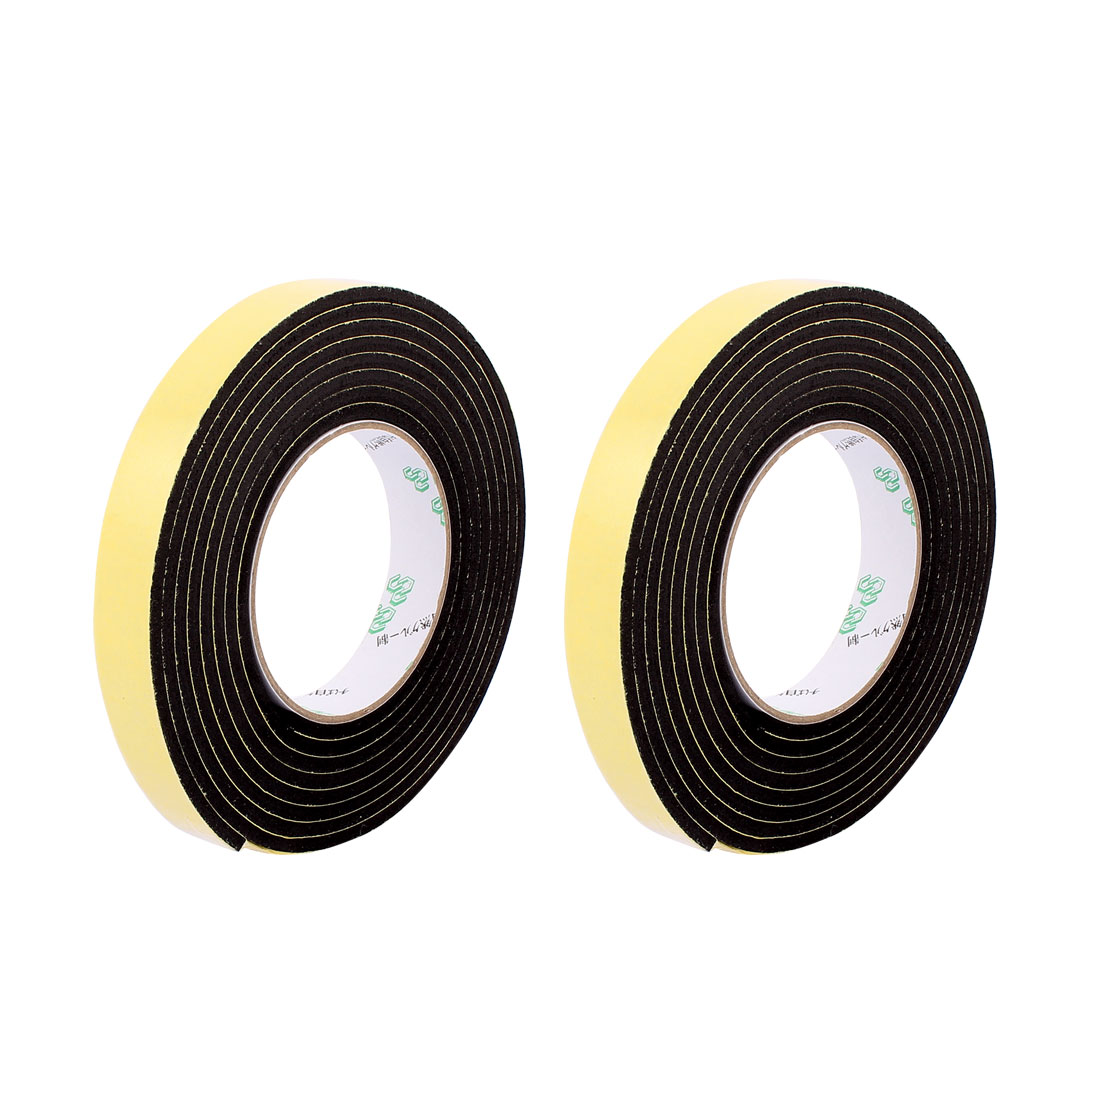 2 Pcs 20mmx4mm Single Sided Sponge Tape Adhesive Sticker Foam Glue Strip Sealing 3 Meters 10Ft